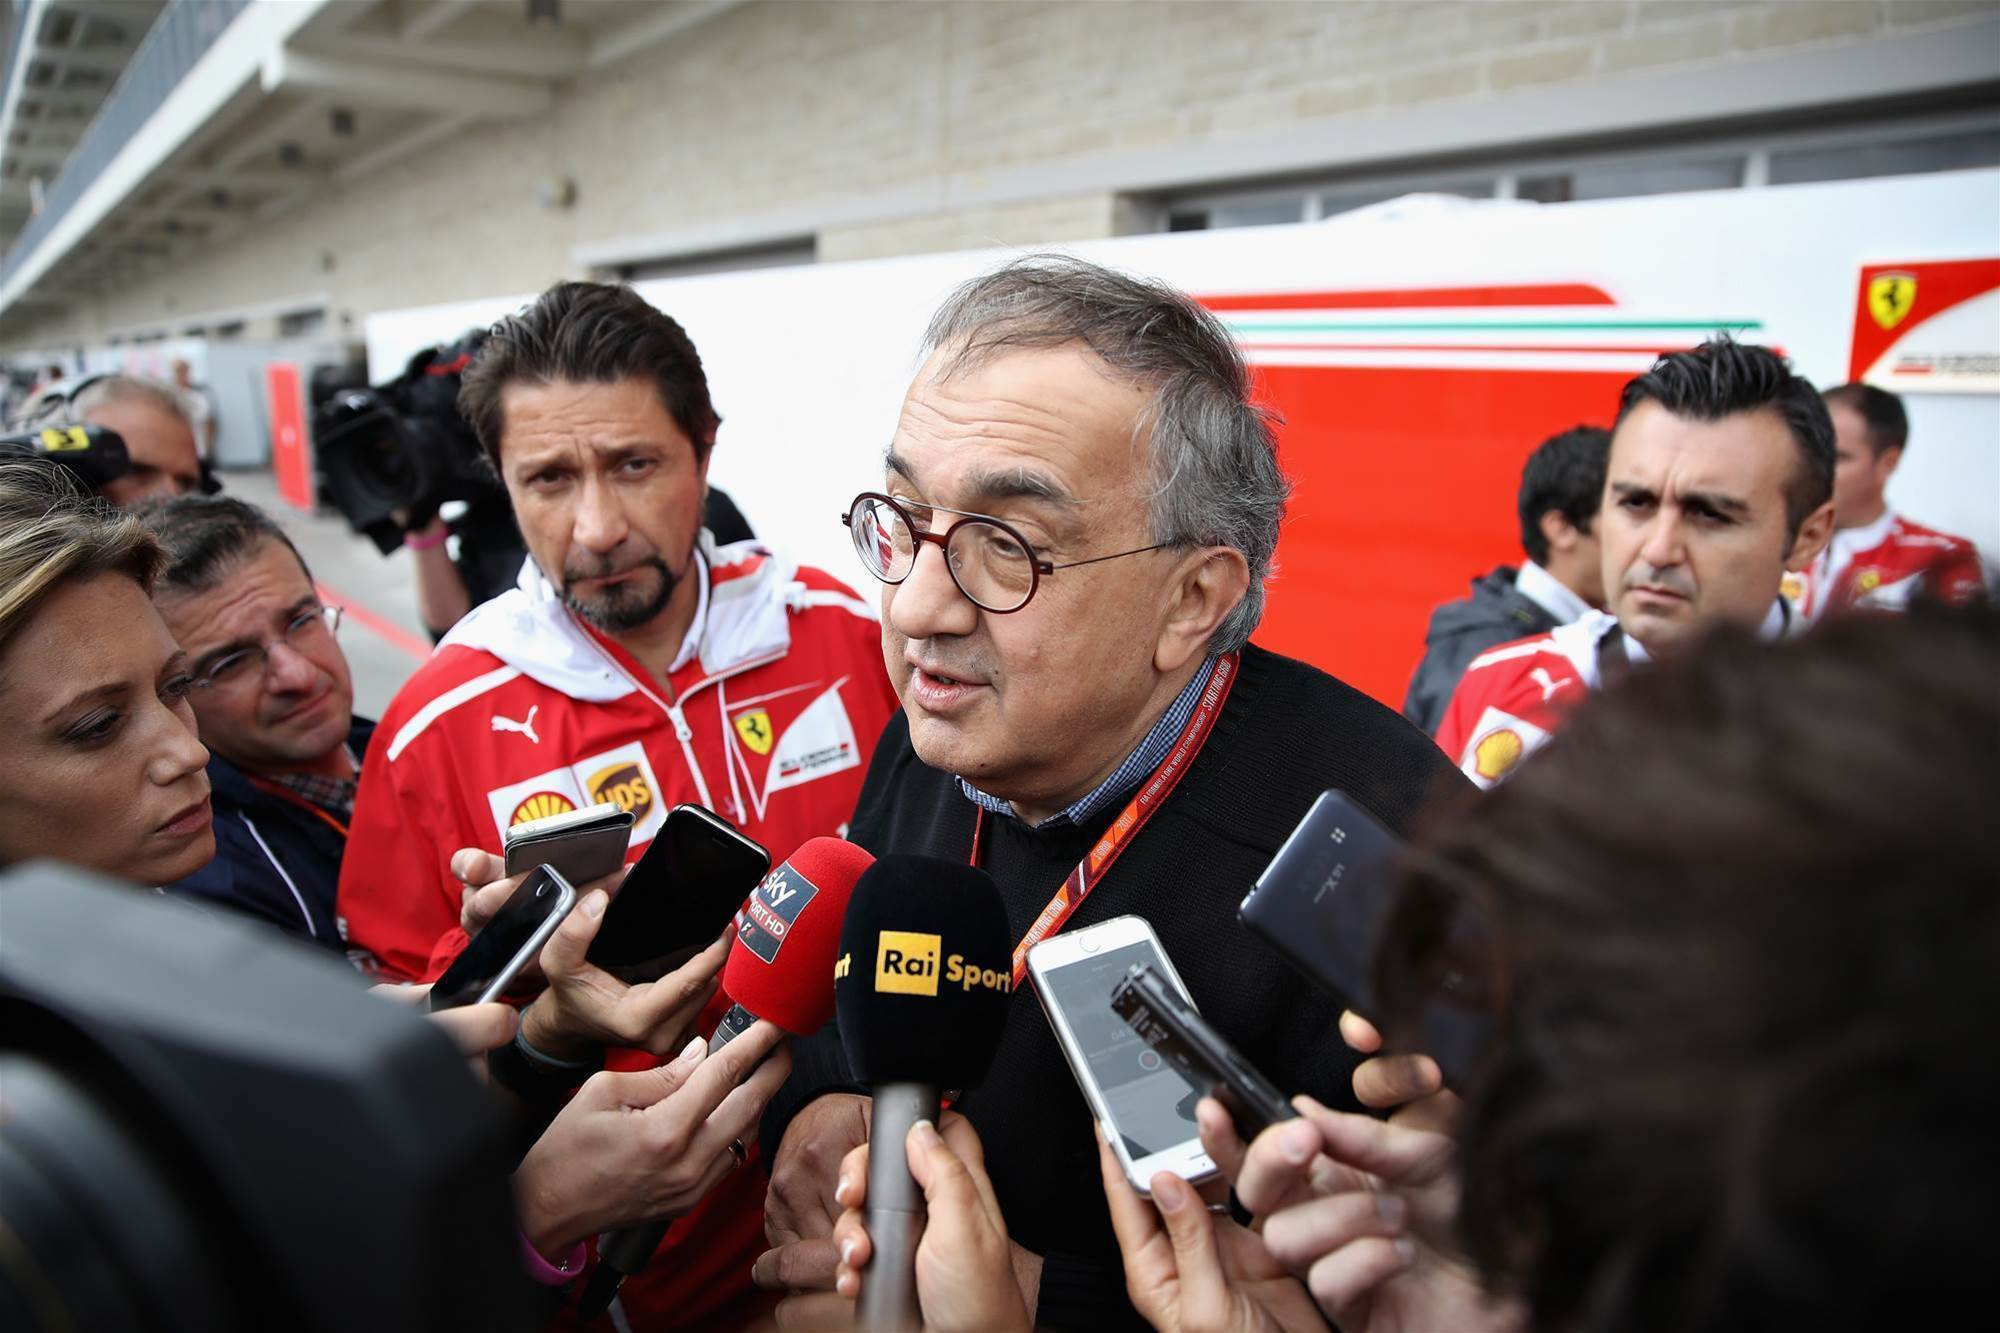 Ferrari threat to quit F1 'real'